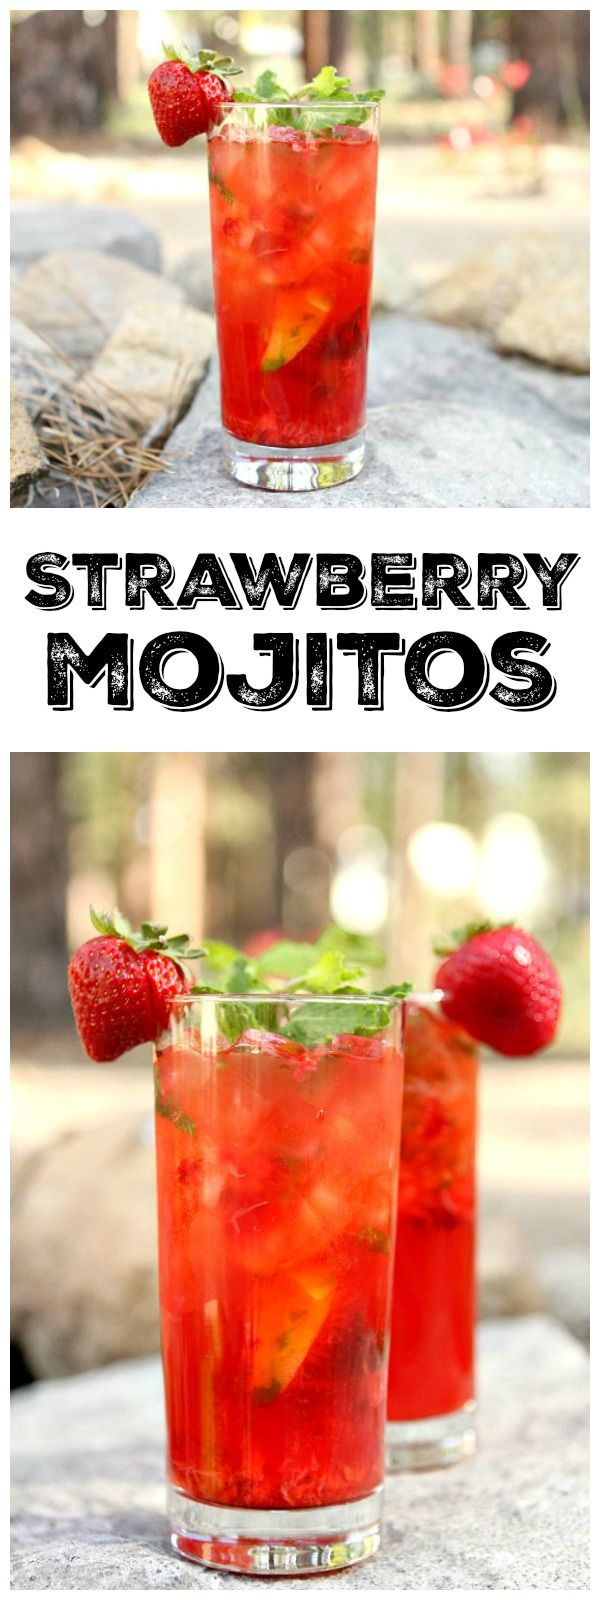 Easy recipe for Strawberry Mojitos : the perfect summer cocktail recipe!